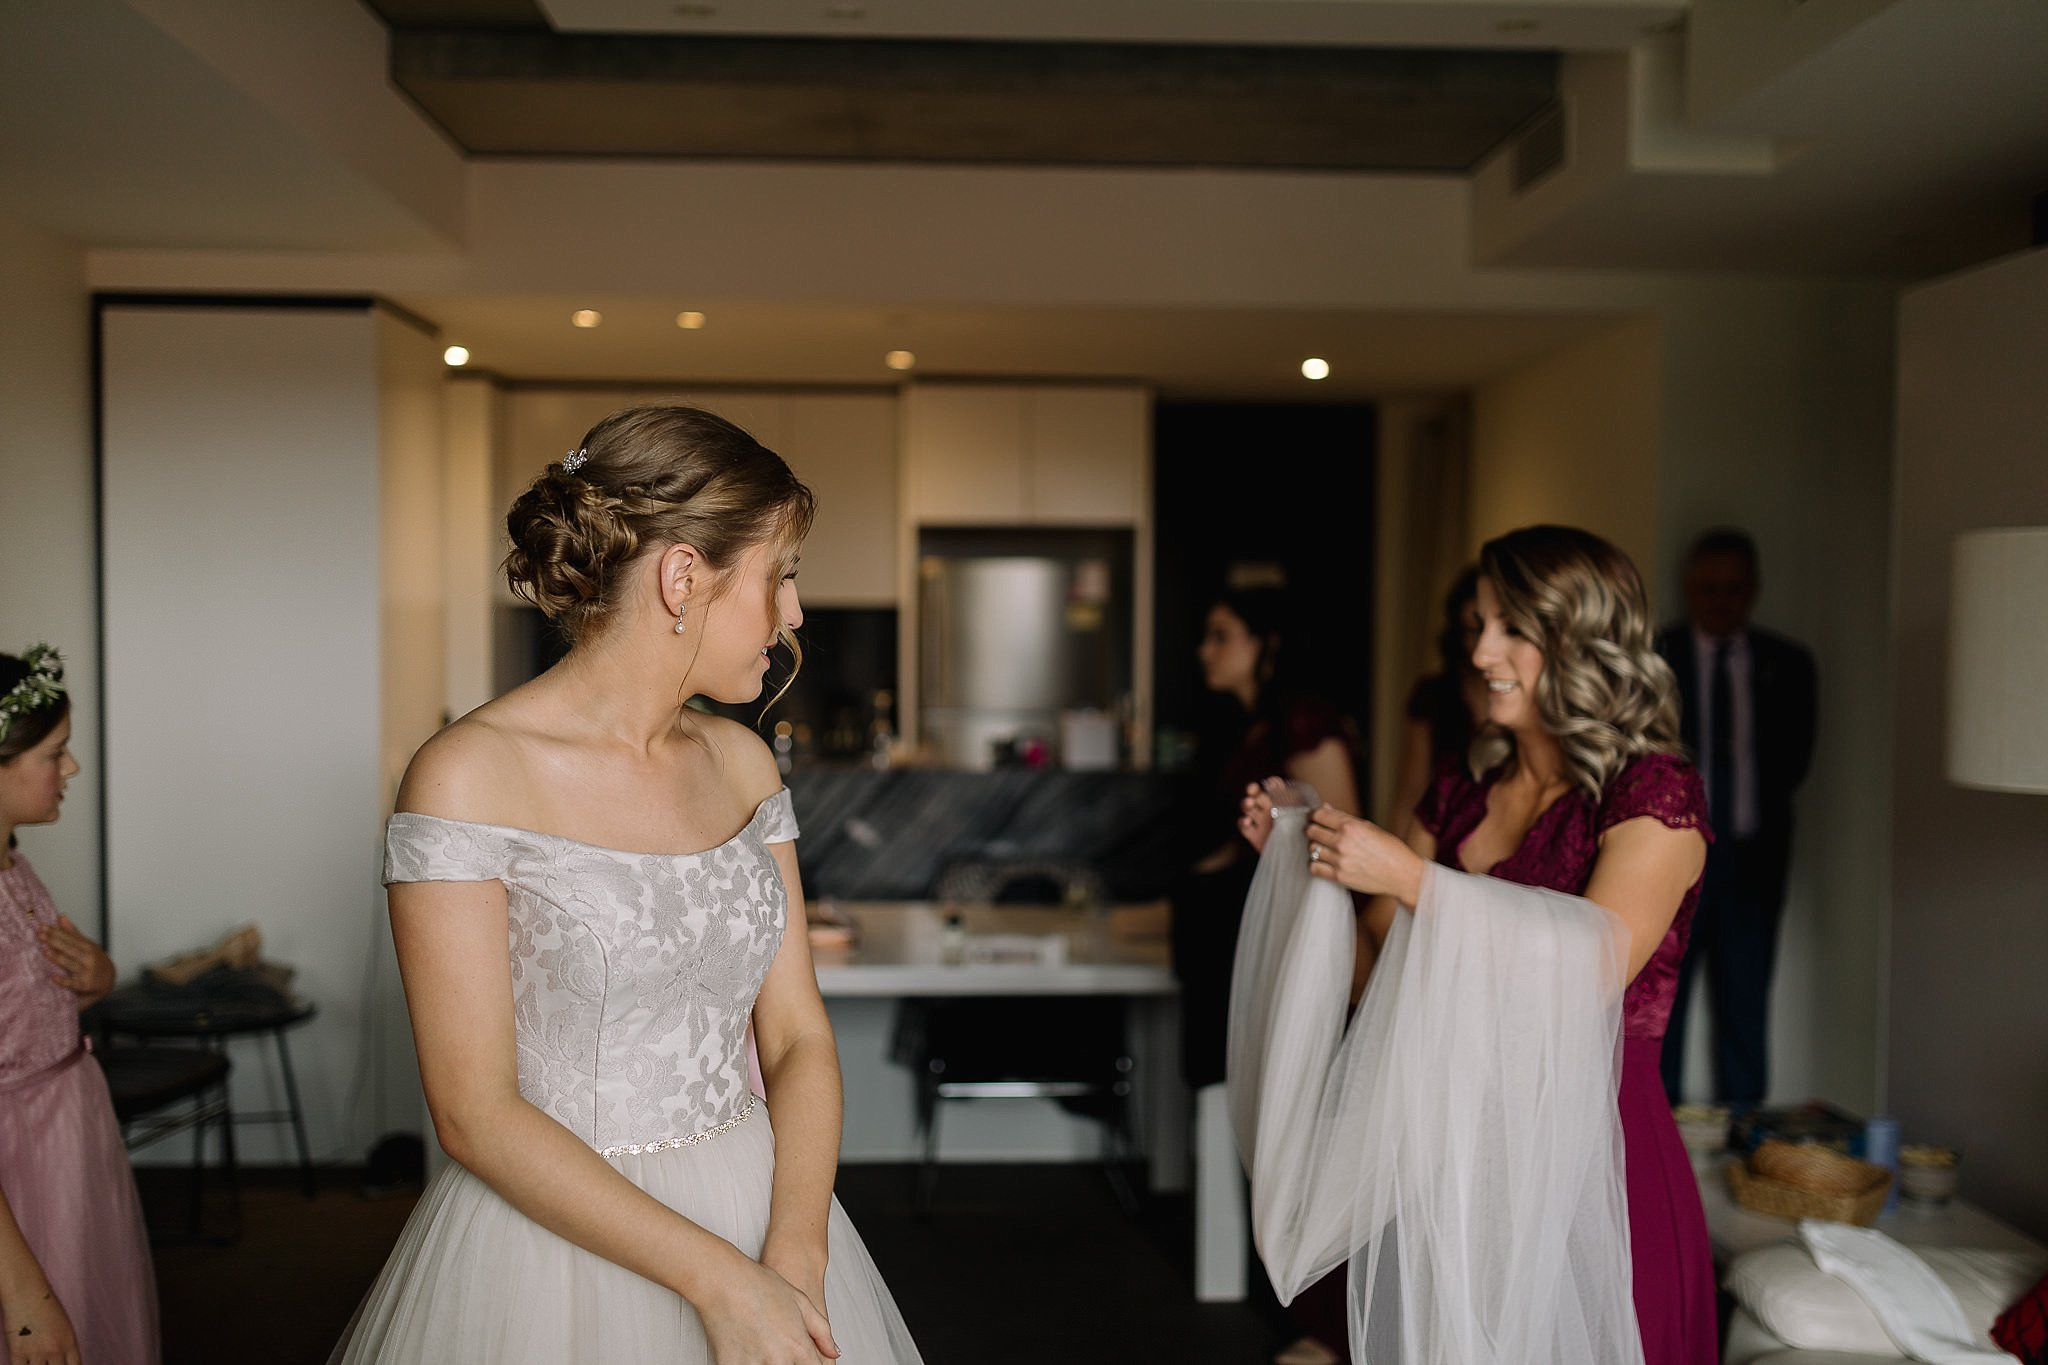 Keepsakephoto by the Keeffes,ACT wedding photographer,ACT weddings,canberra wedding,Canberra Wedding Photographer,Canberra Wedding Photography,canberra weddings,Parlour,autumn wedding,Parlour Wine room wedding,Nishi gallery wedding,Canberra Urban Wedding,